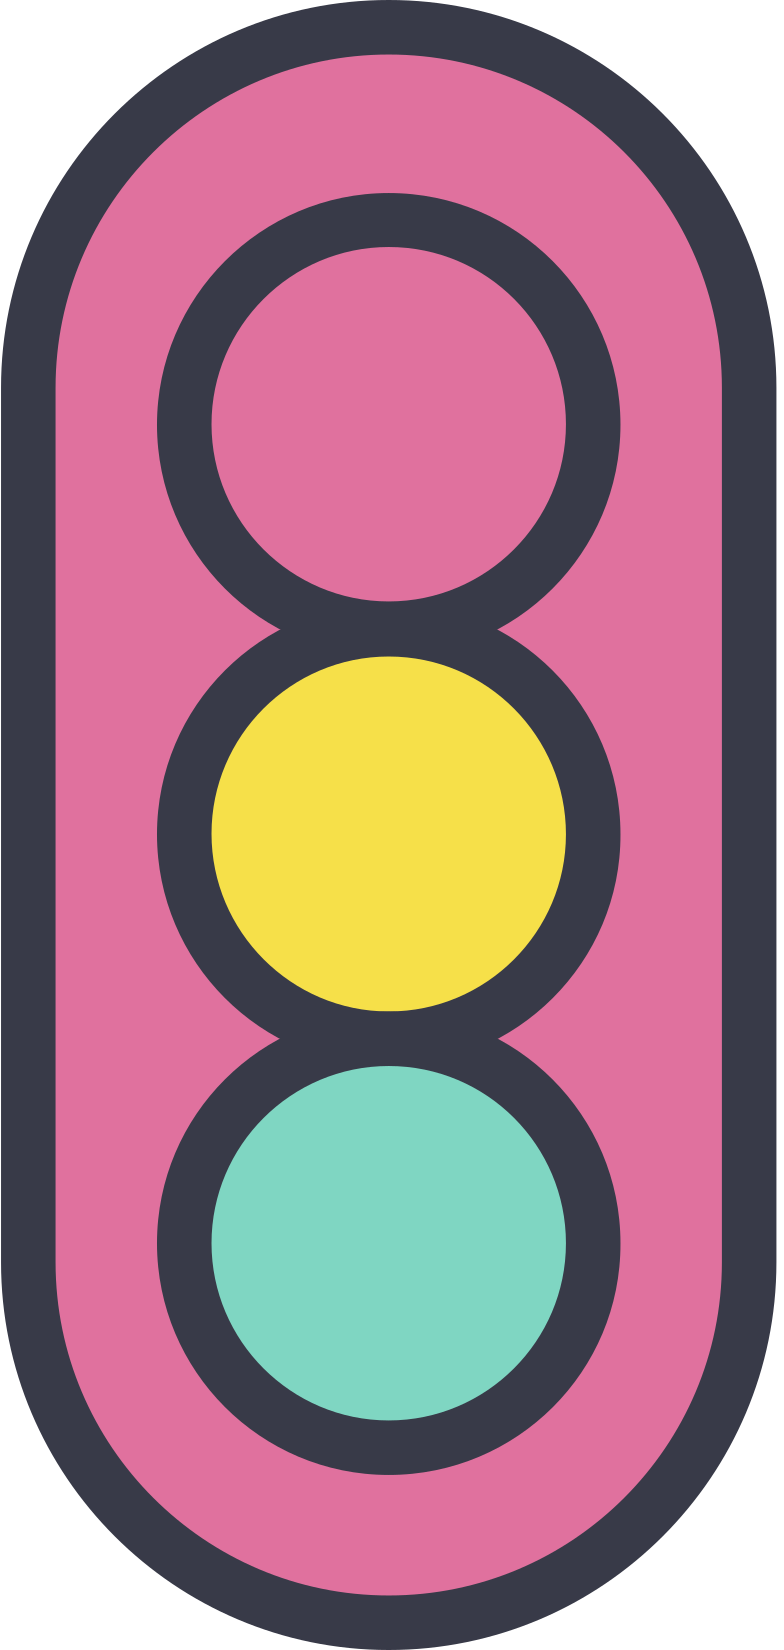 style traffic light Vector images in PNG and SVG | Icons8 Illustrations